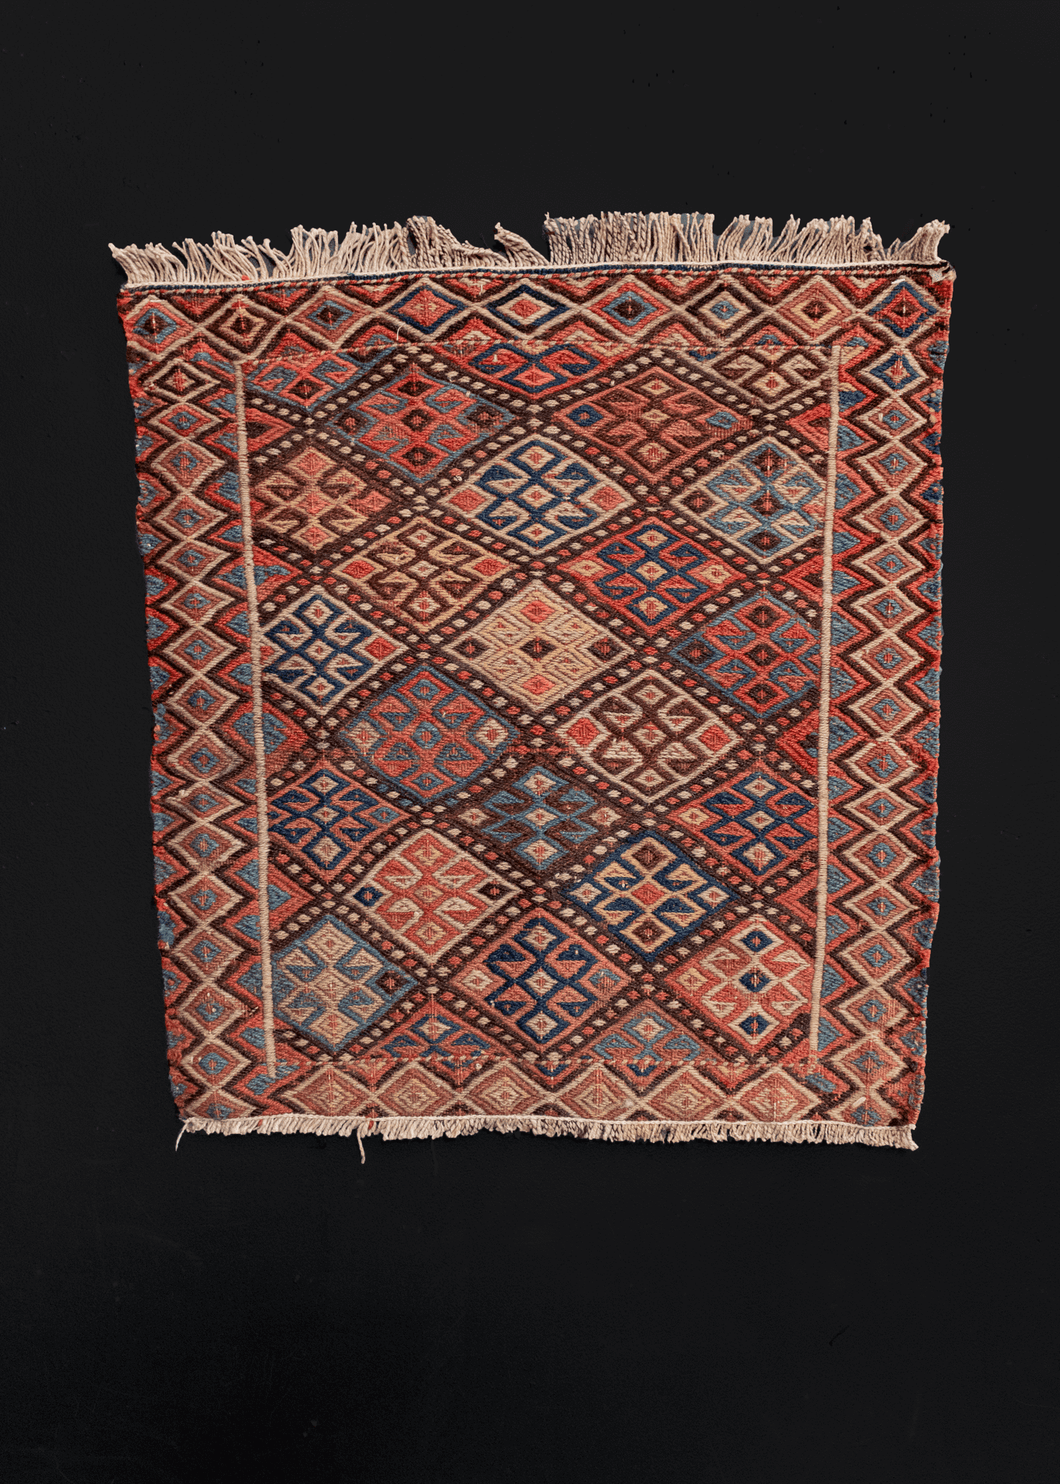 Image of small Persian Shahsavan soumak rug with colorful geometric design.